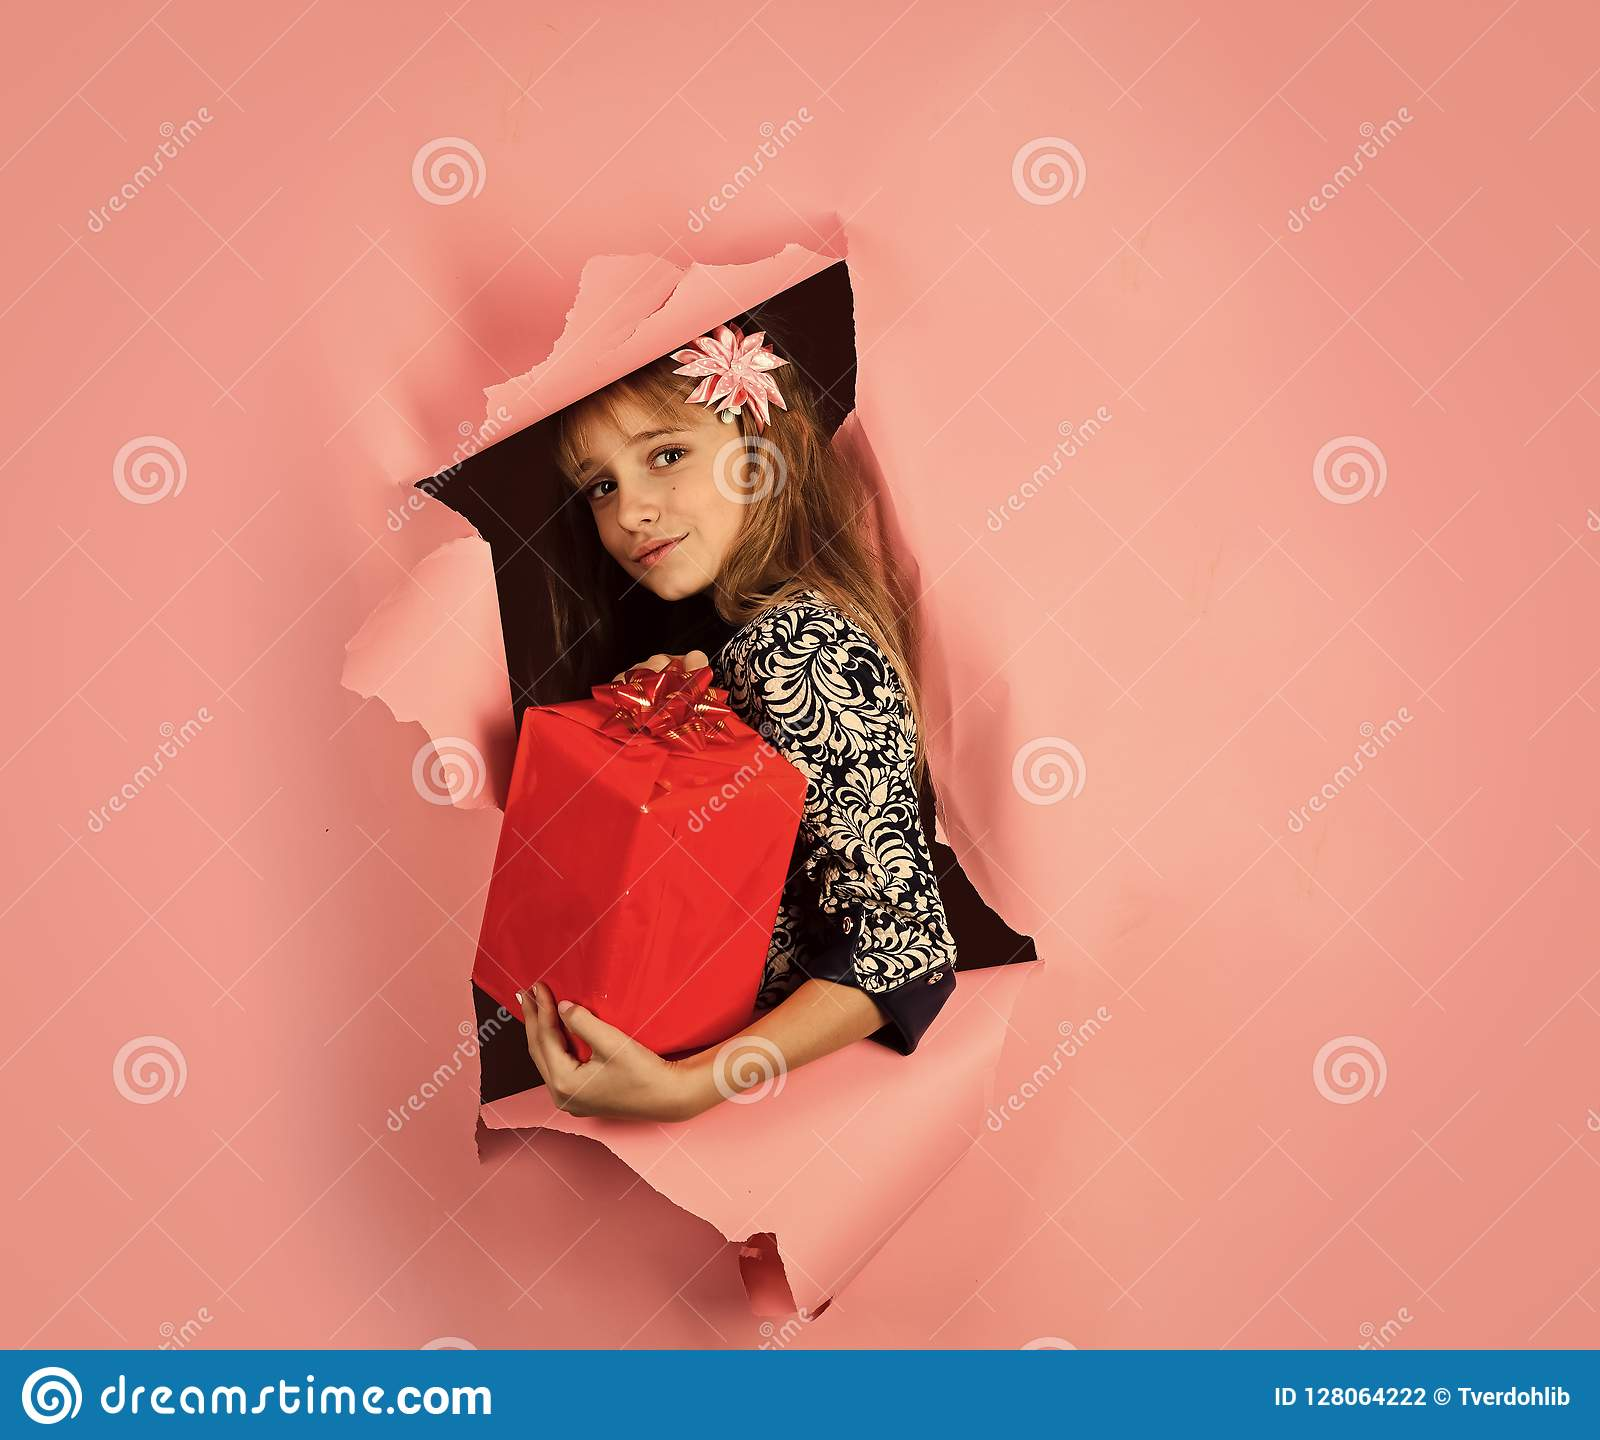 889086f5870 Boxing day holiday celebration and party child girl with present jpg  1600x1440 Gifts cyber girl hat